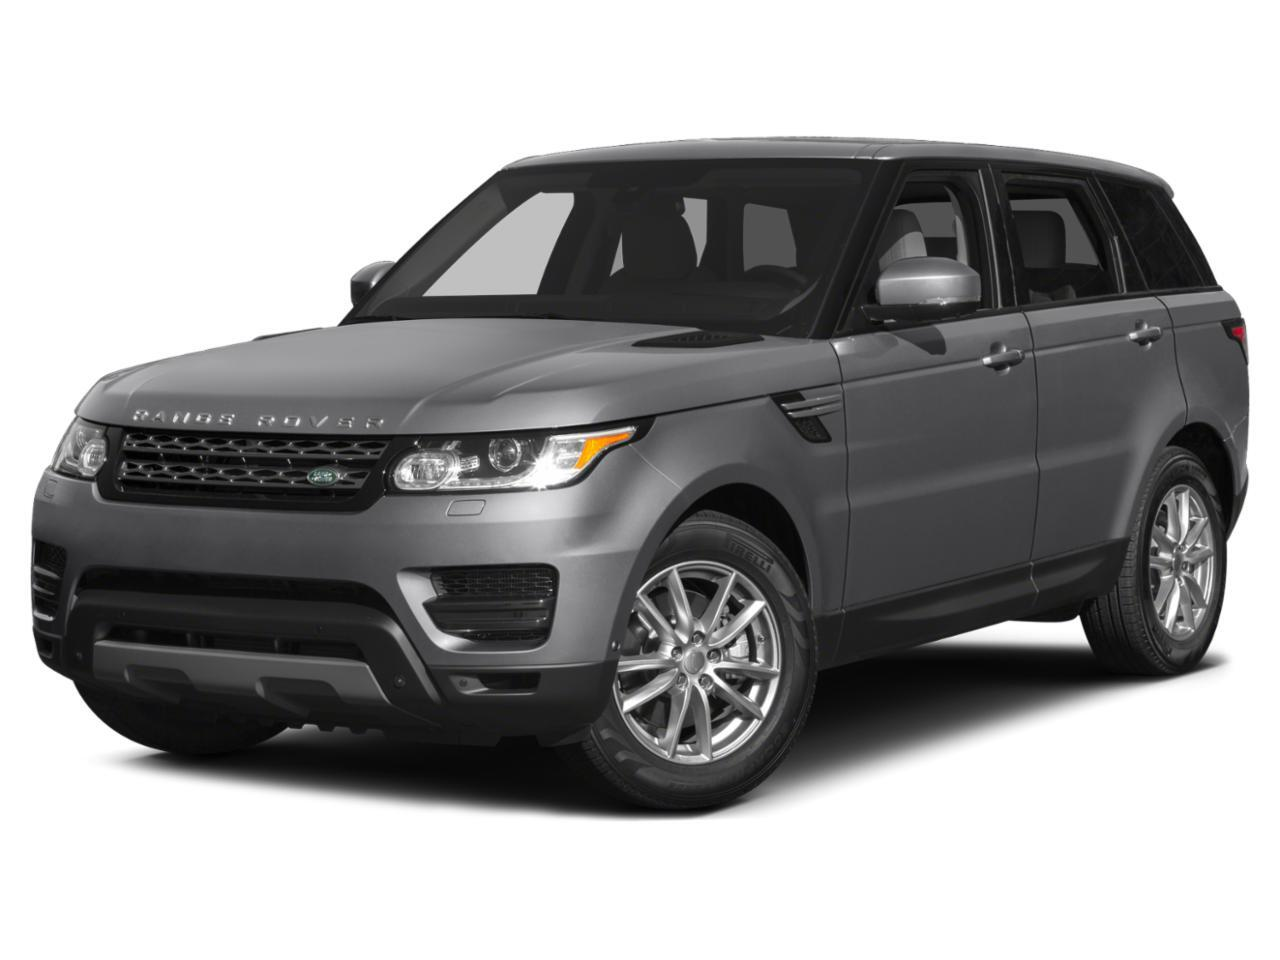 2015_Land Rover_Range Rover Sport_3.0L V6 Supercharged HSE_ Houston TX